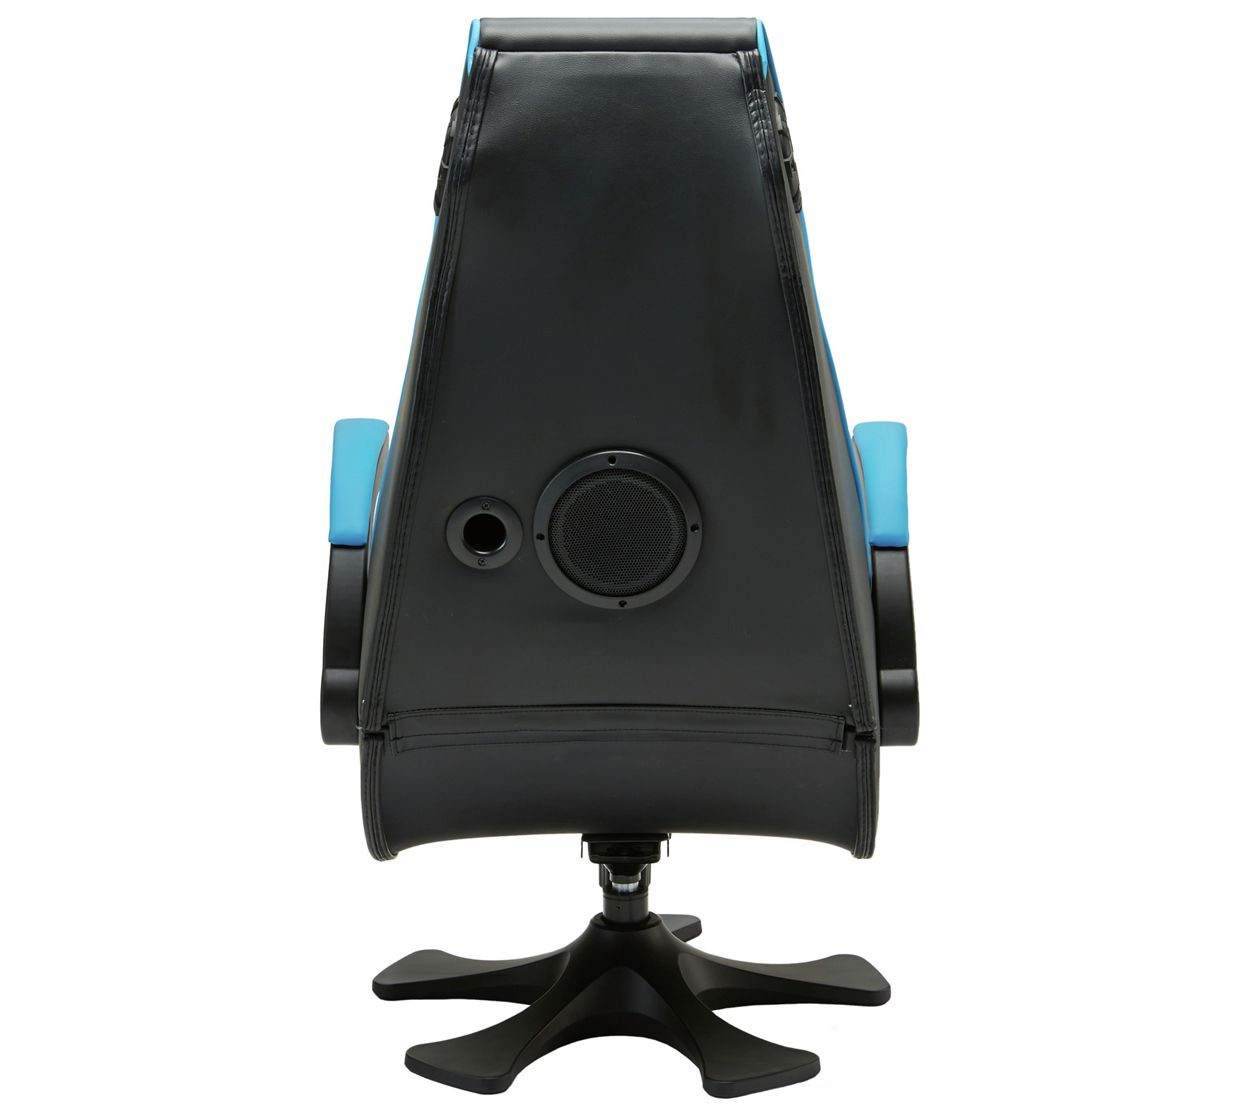 Playstation 4 Gaming Chair 100 Images Chairs Dxracer Racing Series Oh Rv118nbw Zero Black White Undefined Best Price Blink Kuwait